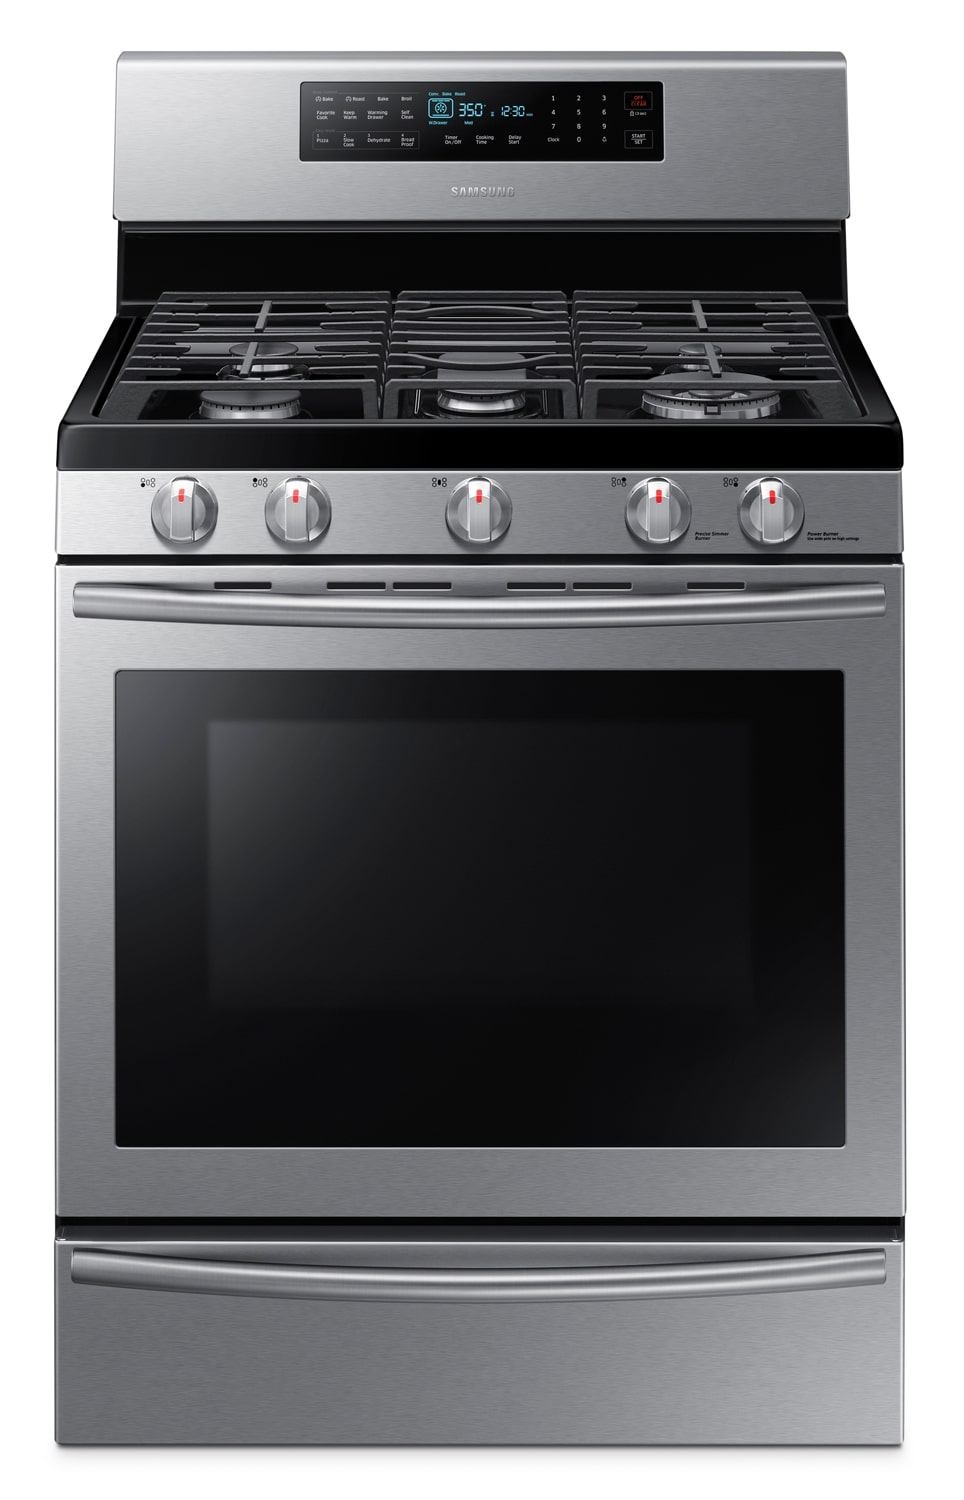 Cooking Products - Samsung Stainless Steel Freestanding Gas Range (5.8 Cu. Ft.) - NX58H5650WS